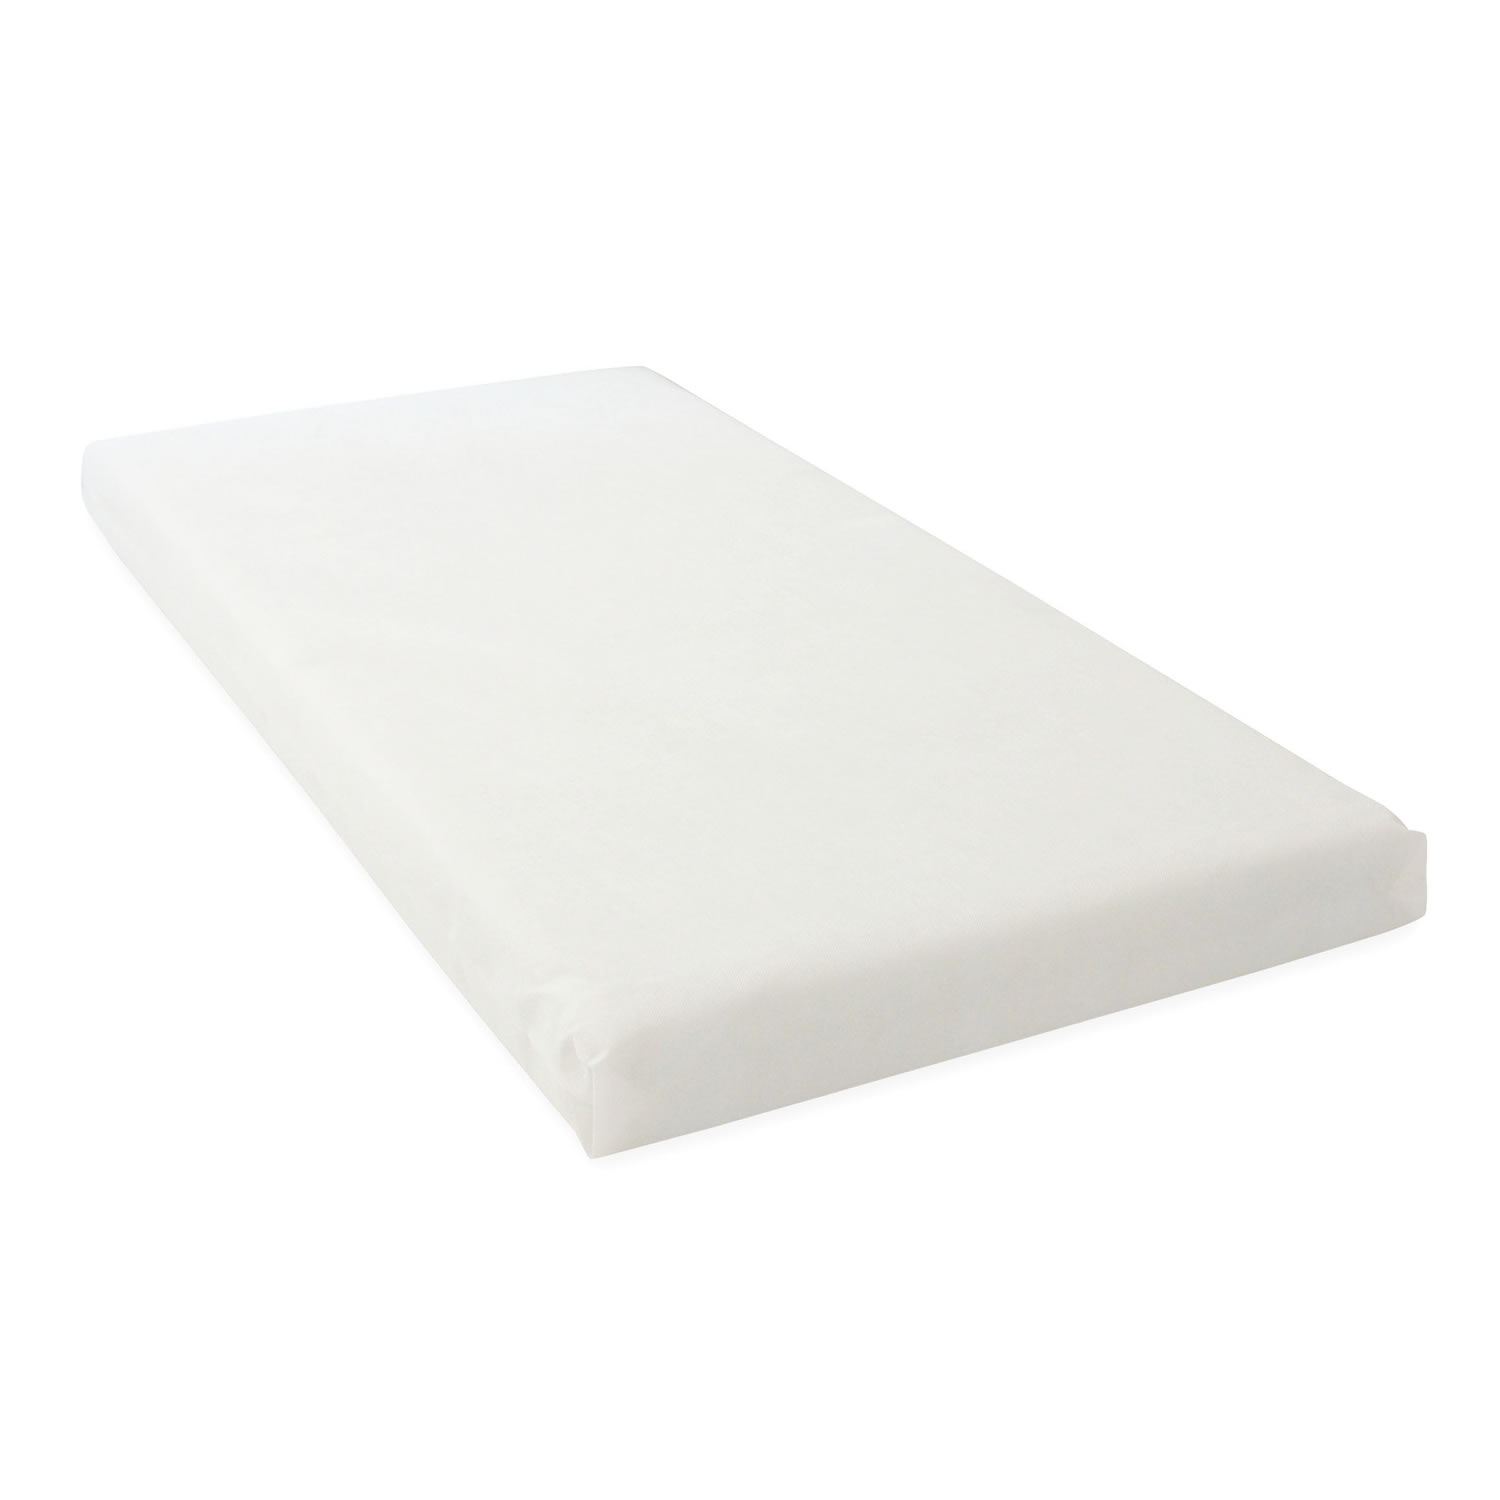 Cot Bed Mattress Foam